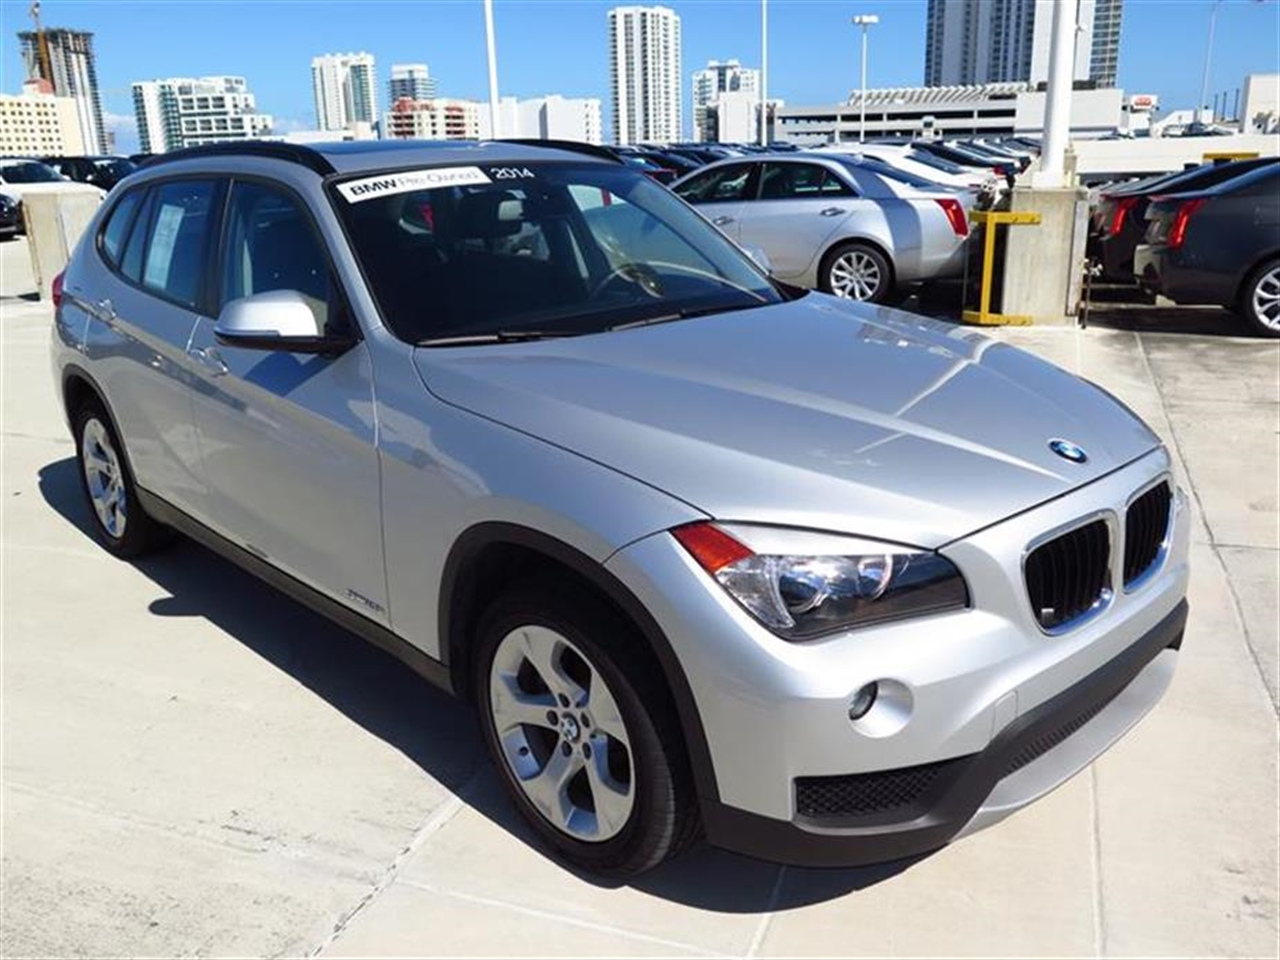 2014 BMW X1 RWD 4dr sDrive28i 11382 miles 2 Seatback Storage Pockets 3 12V DC Power Outlets LEAT